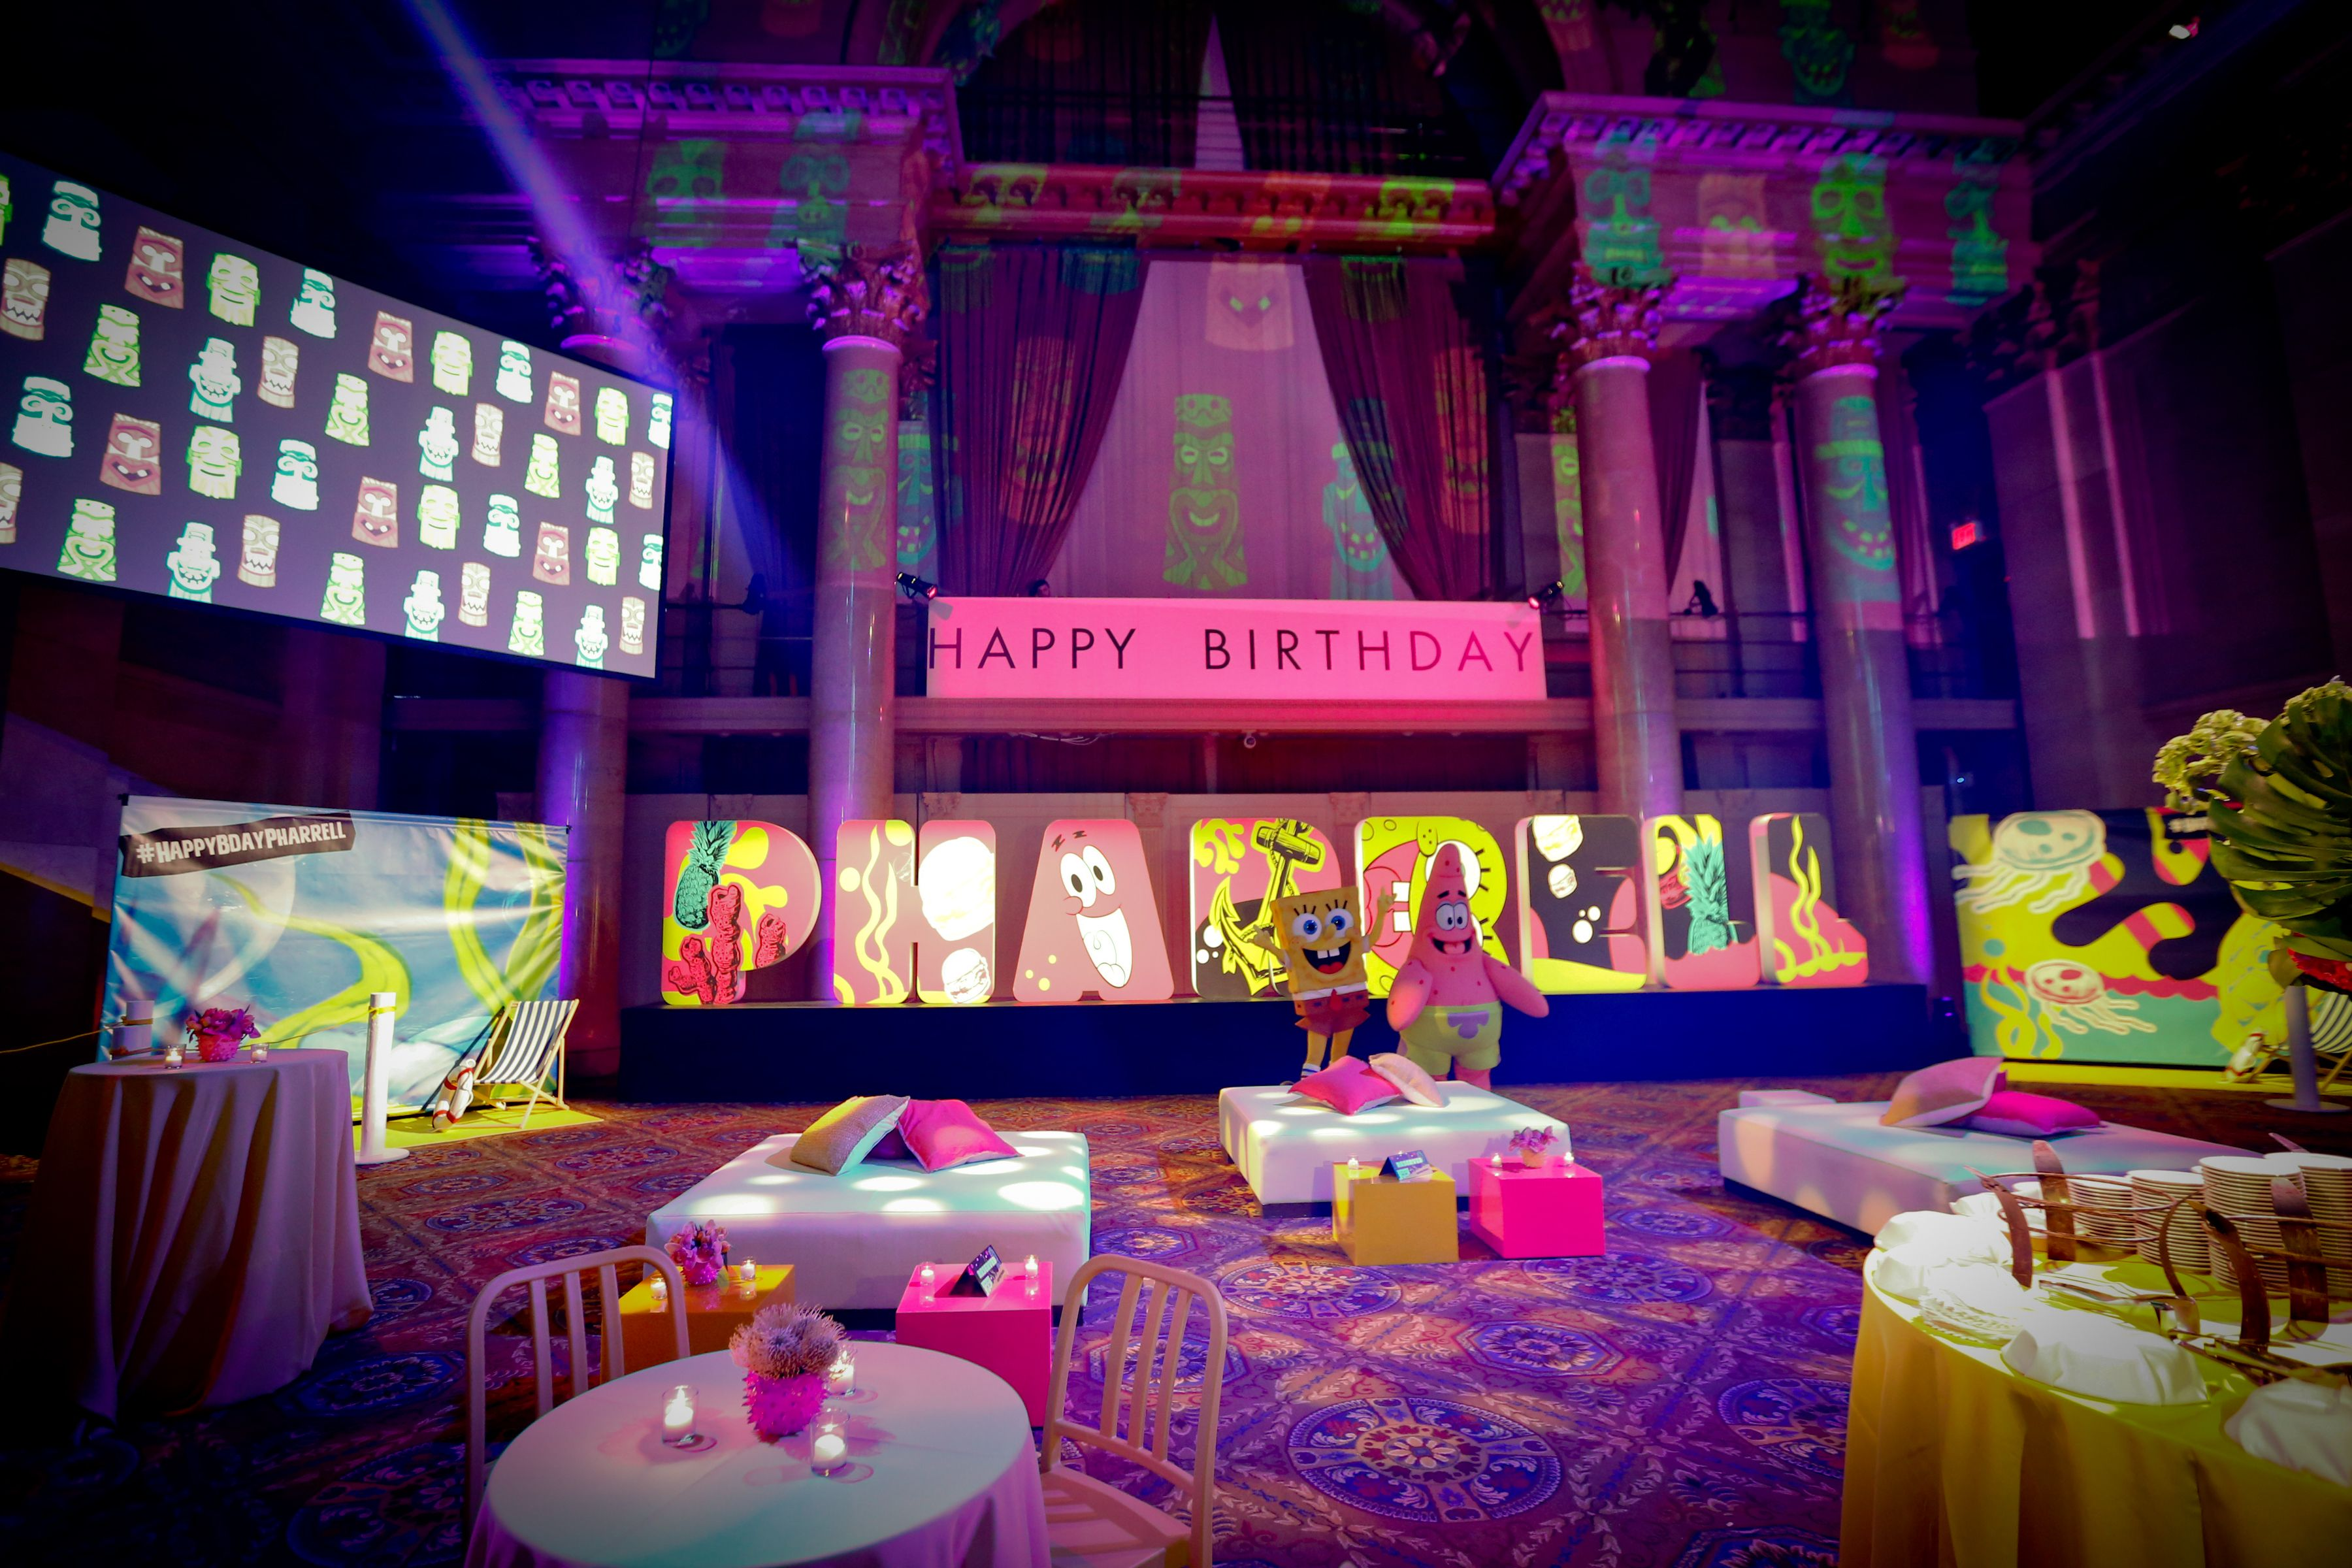 Creative Birthday Party Ideas 4 Extravagant Event Themes Guests